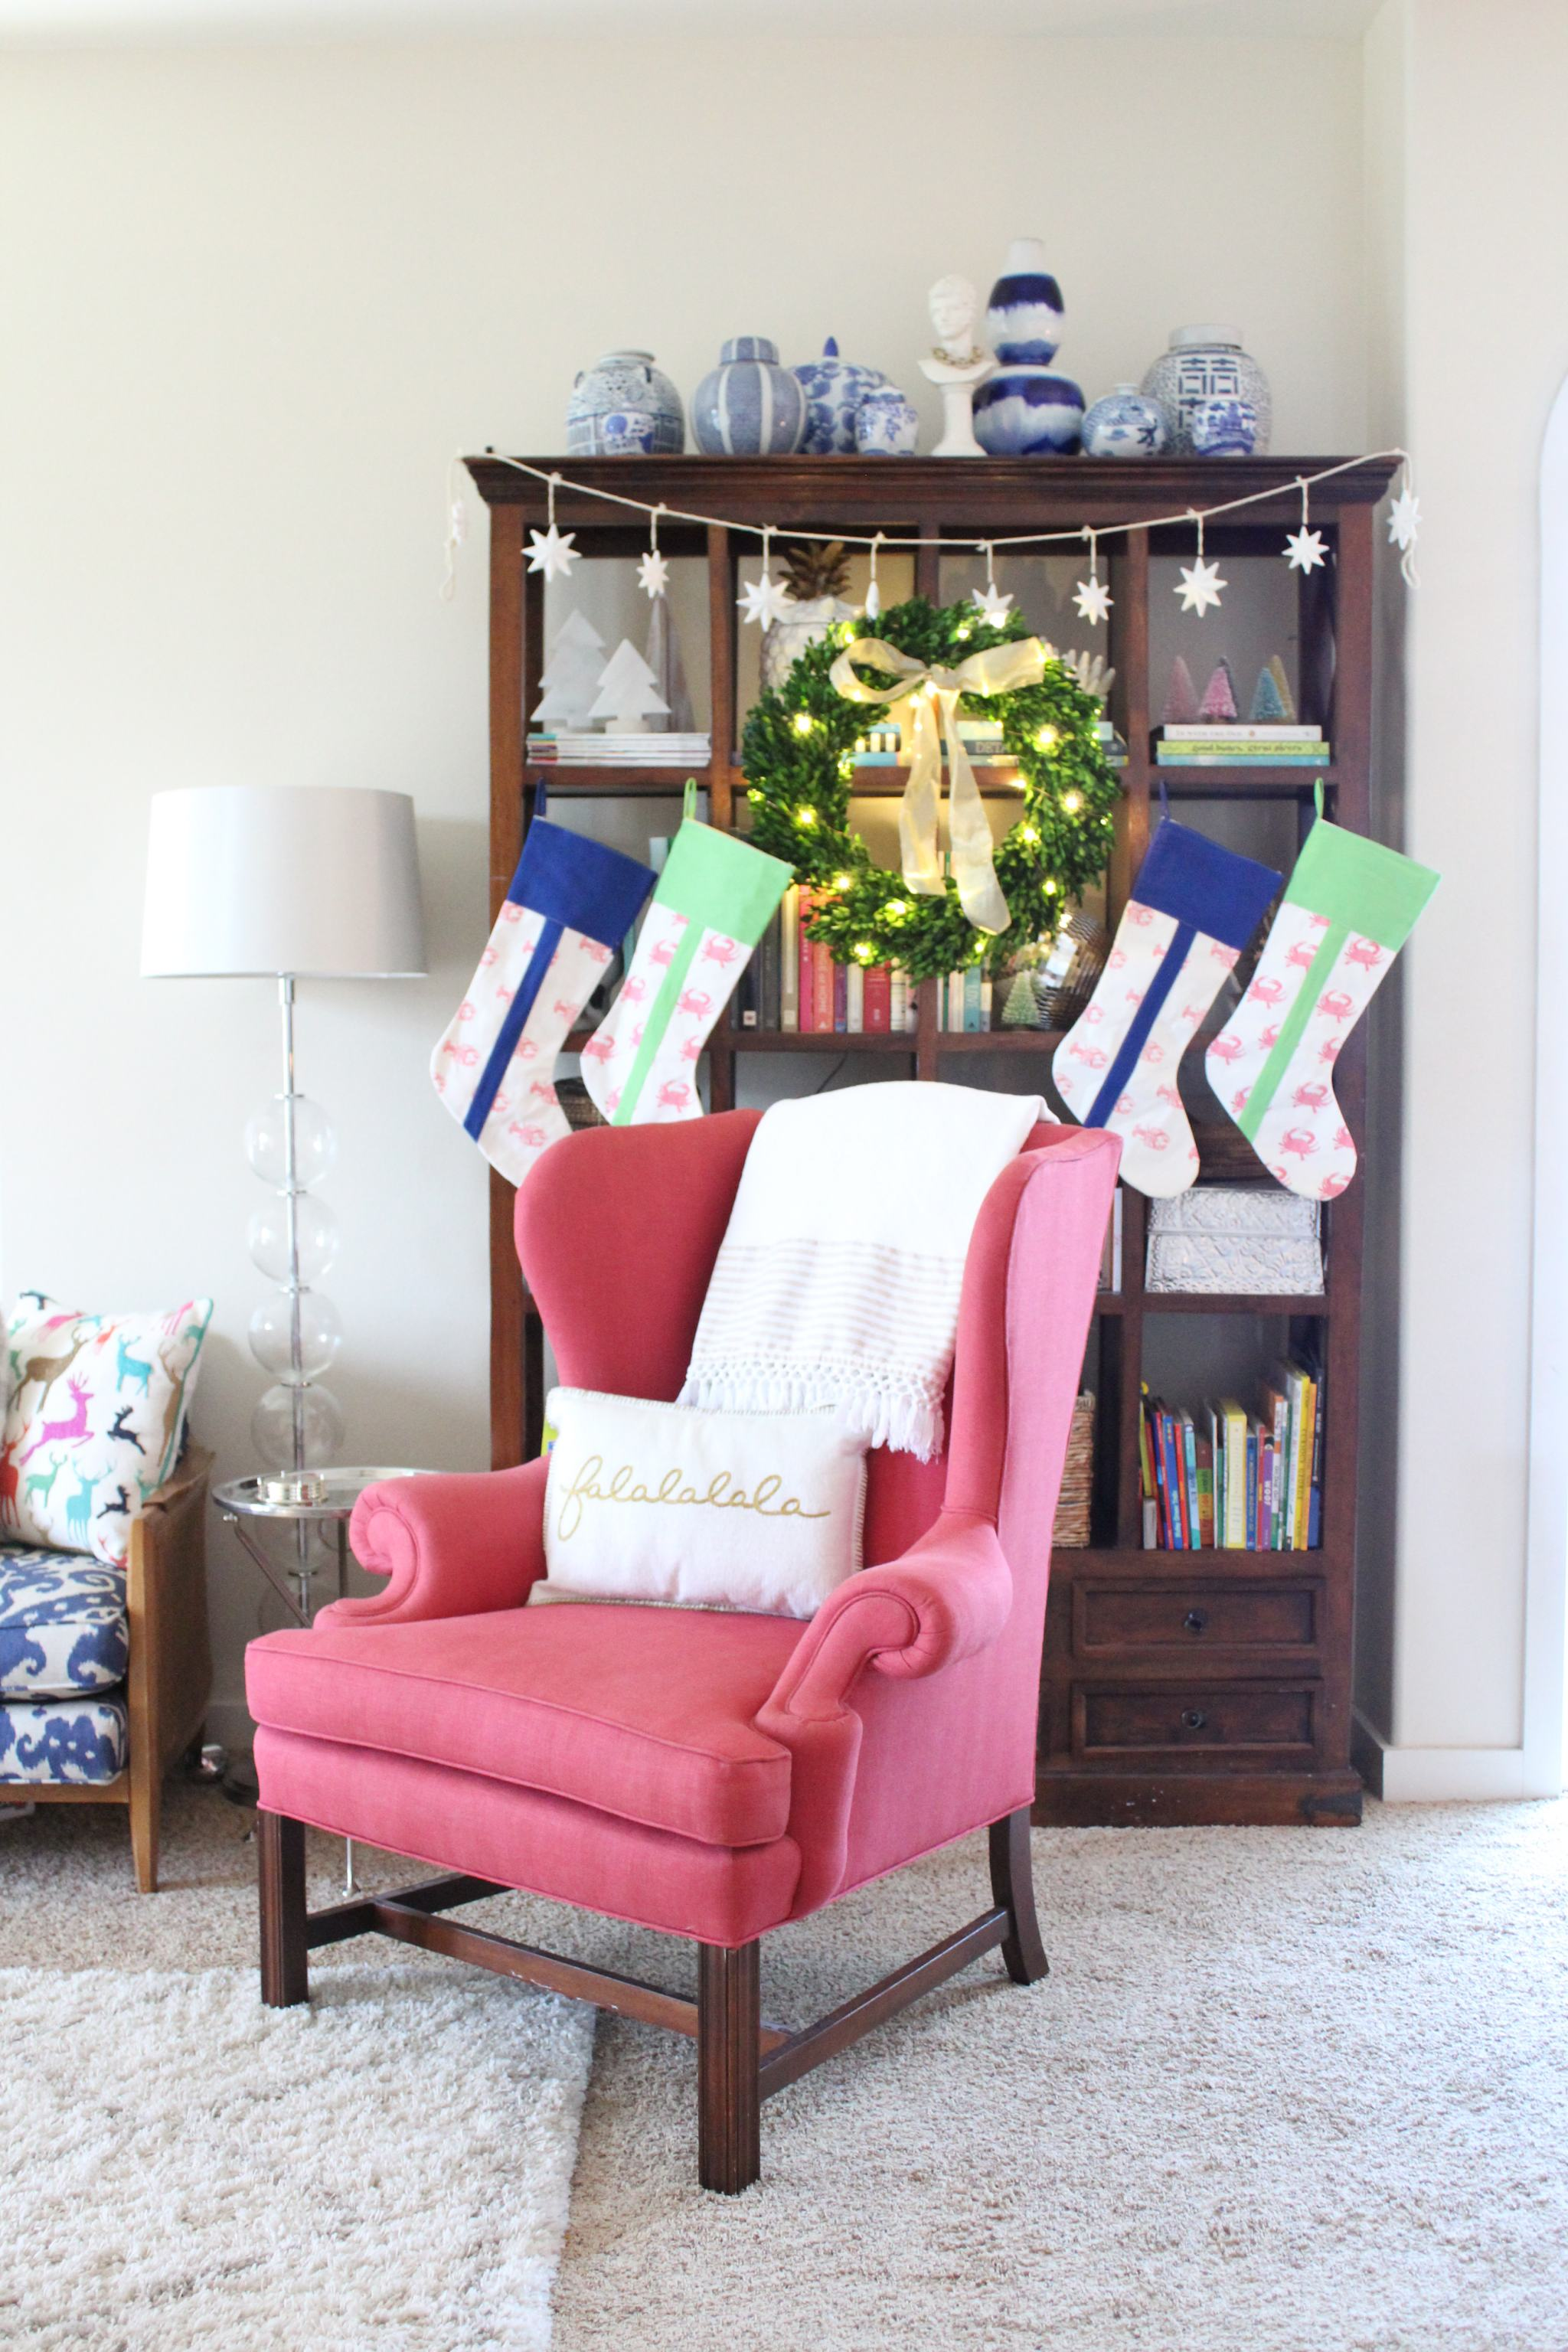 pink chippendale chair - crab and cleek stockings - tall bookcase - blue and white ginger jars - coastal Christmas decor